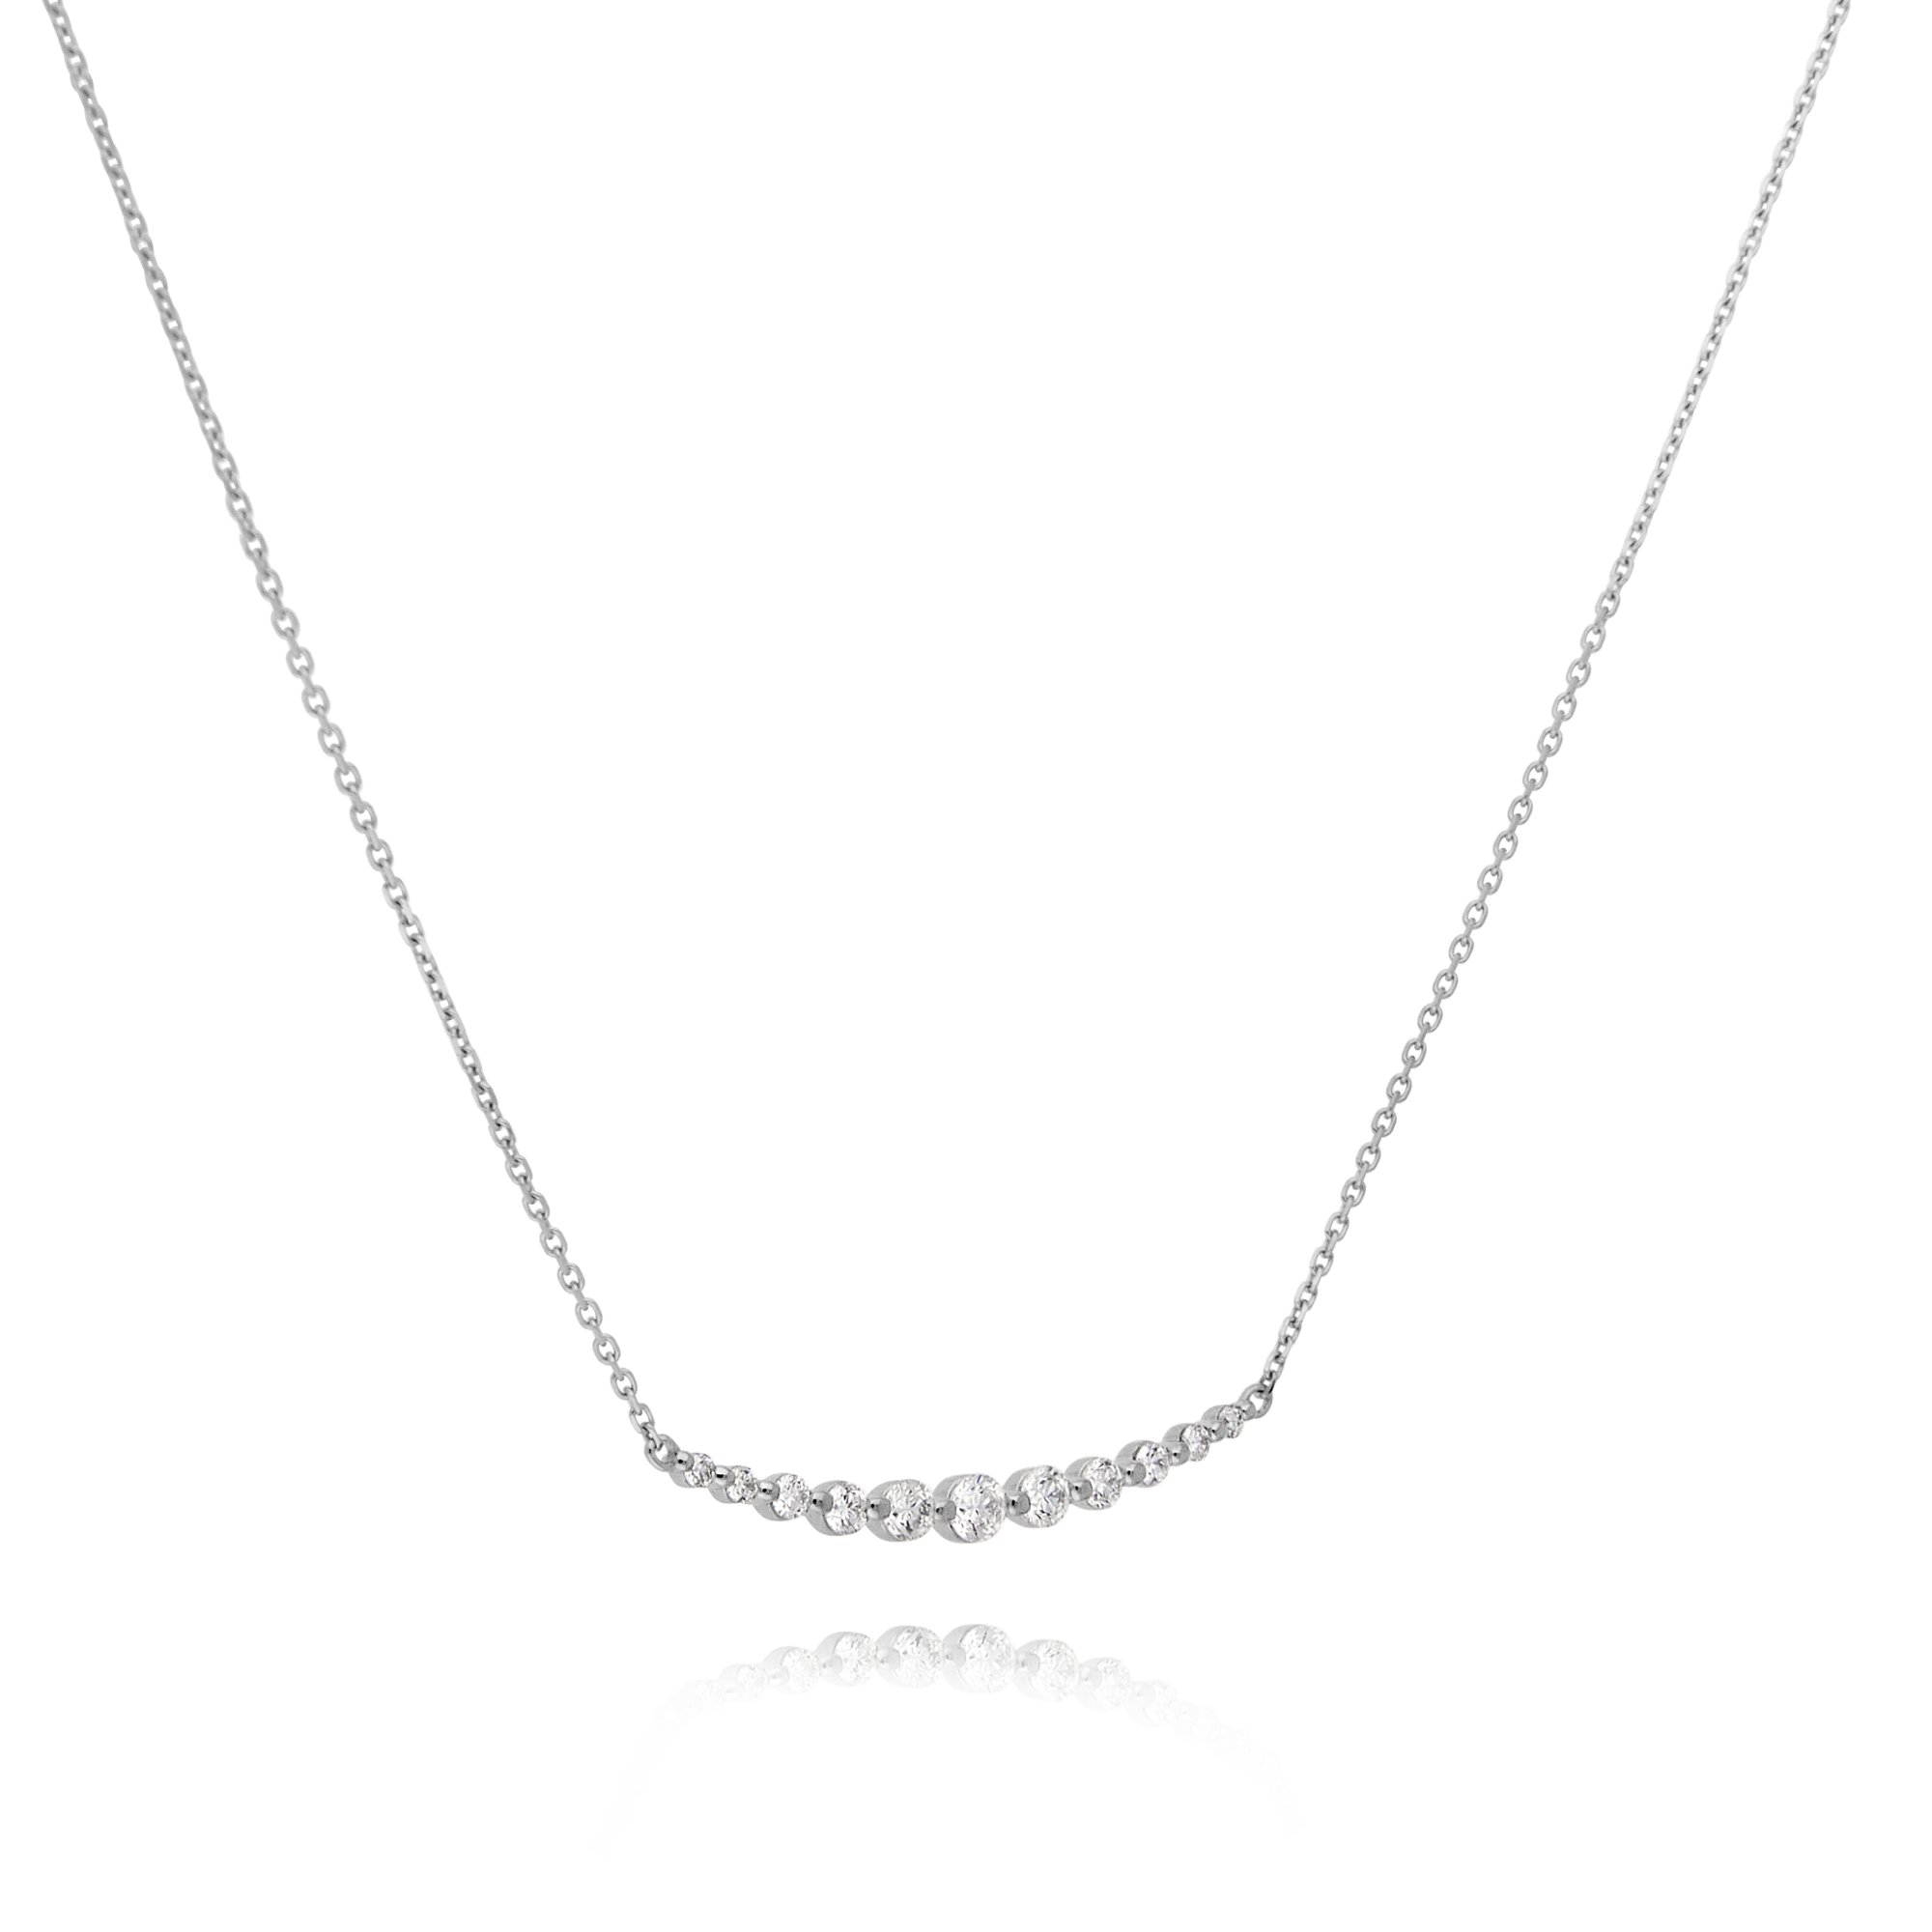 18ct White Gold Diamond Bar Necklace